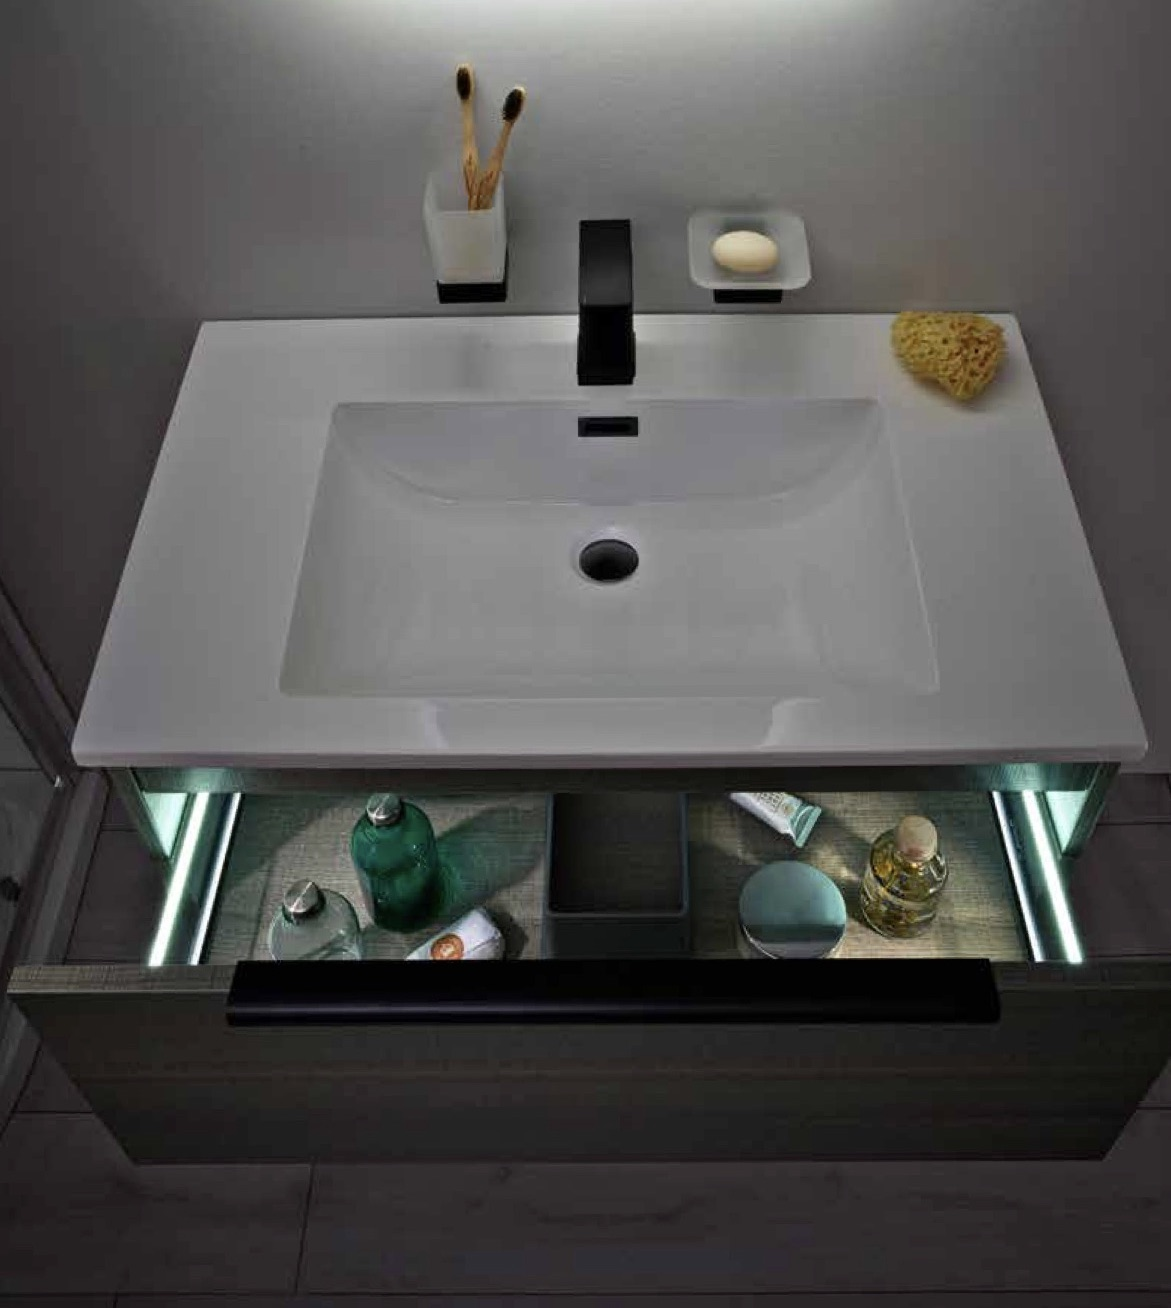 LED Lit Basin Unit